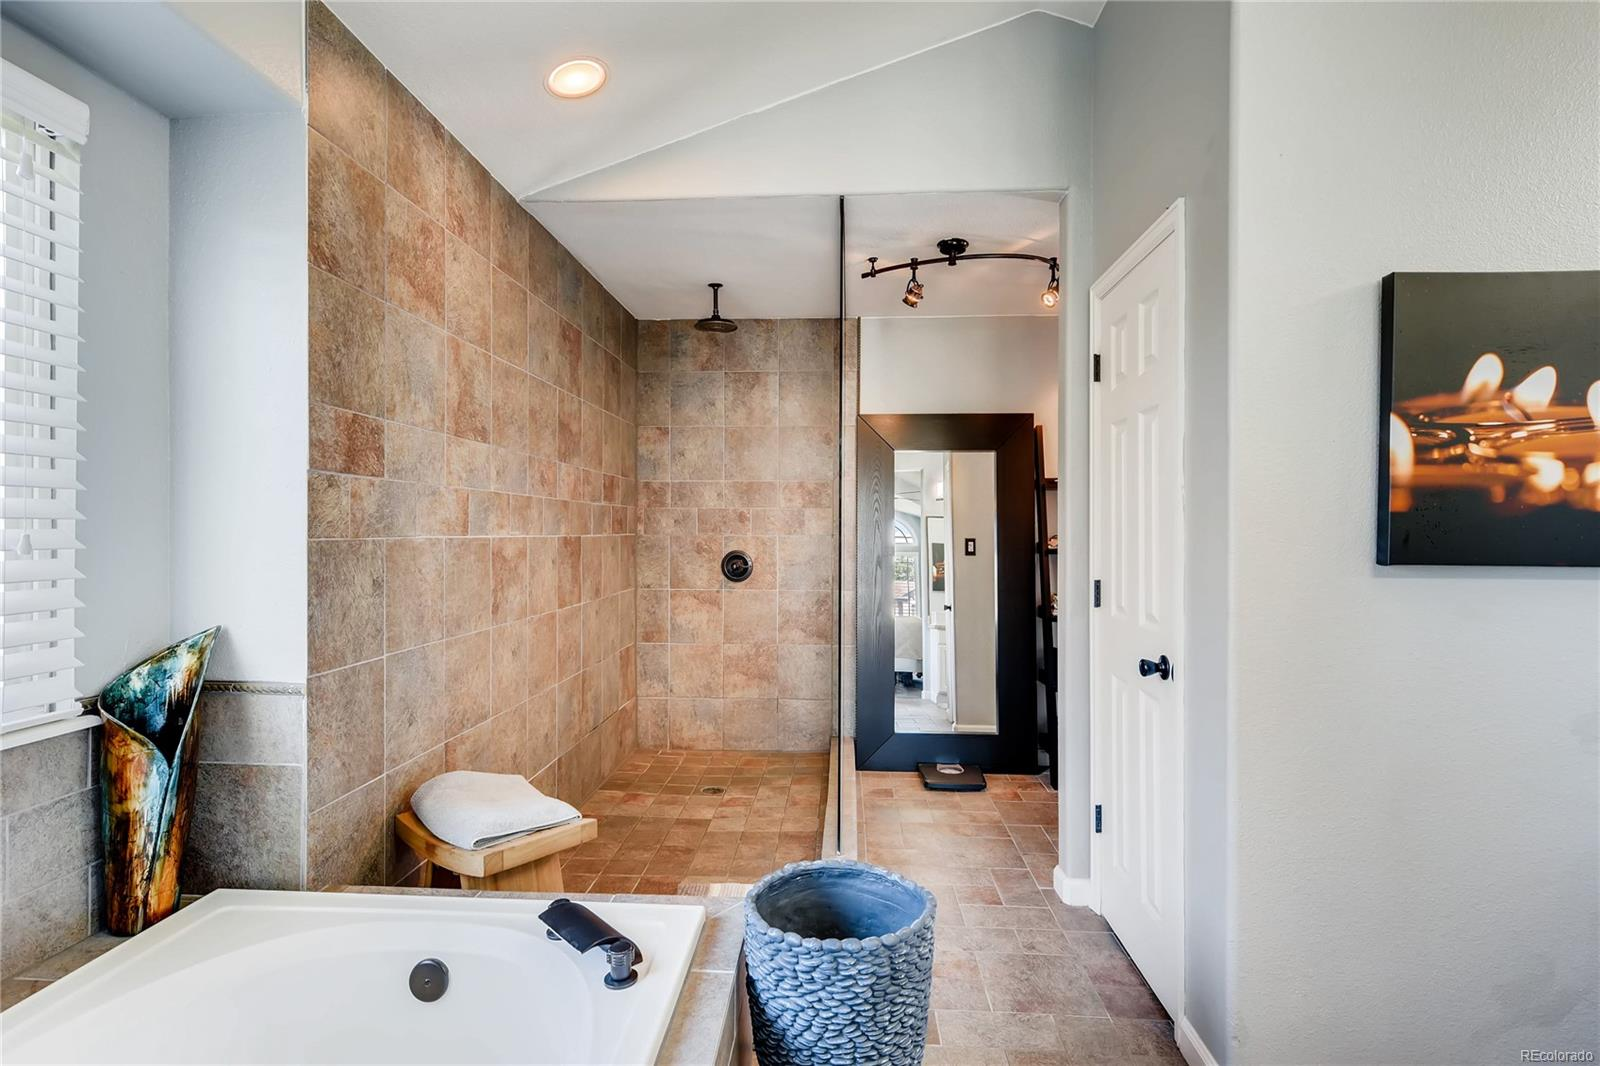 There is no bathroom like this! The 50 sq ft shower is an incredible remodel feature that sets this hone apart. The private toilet is behind the door on the right.